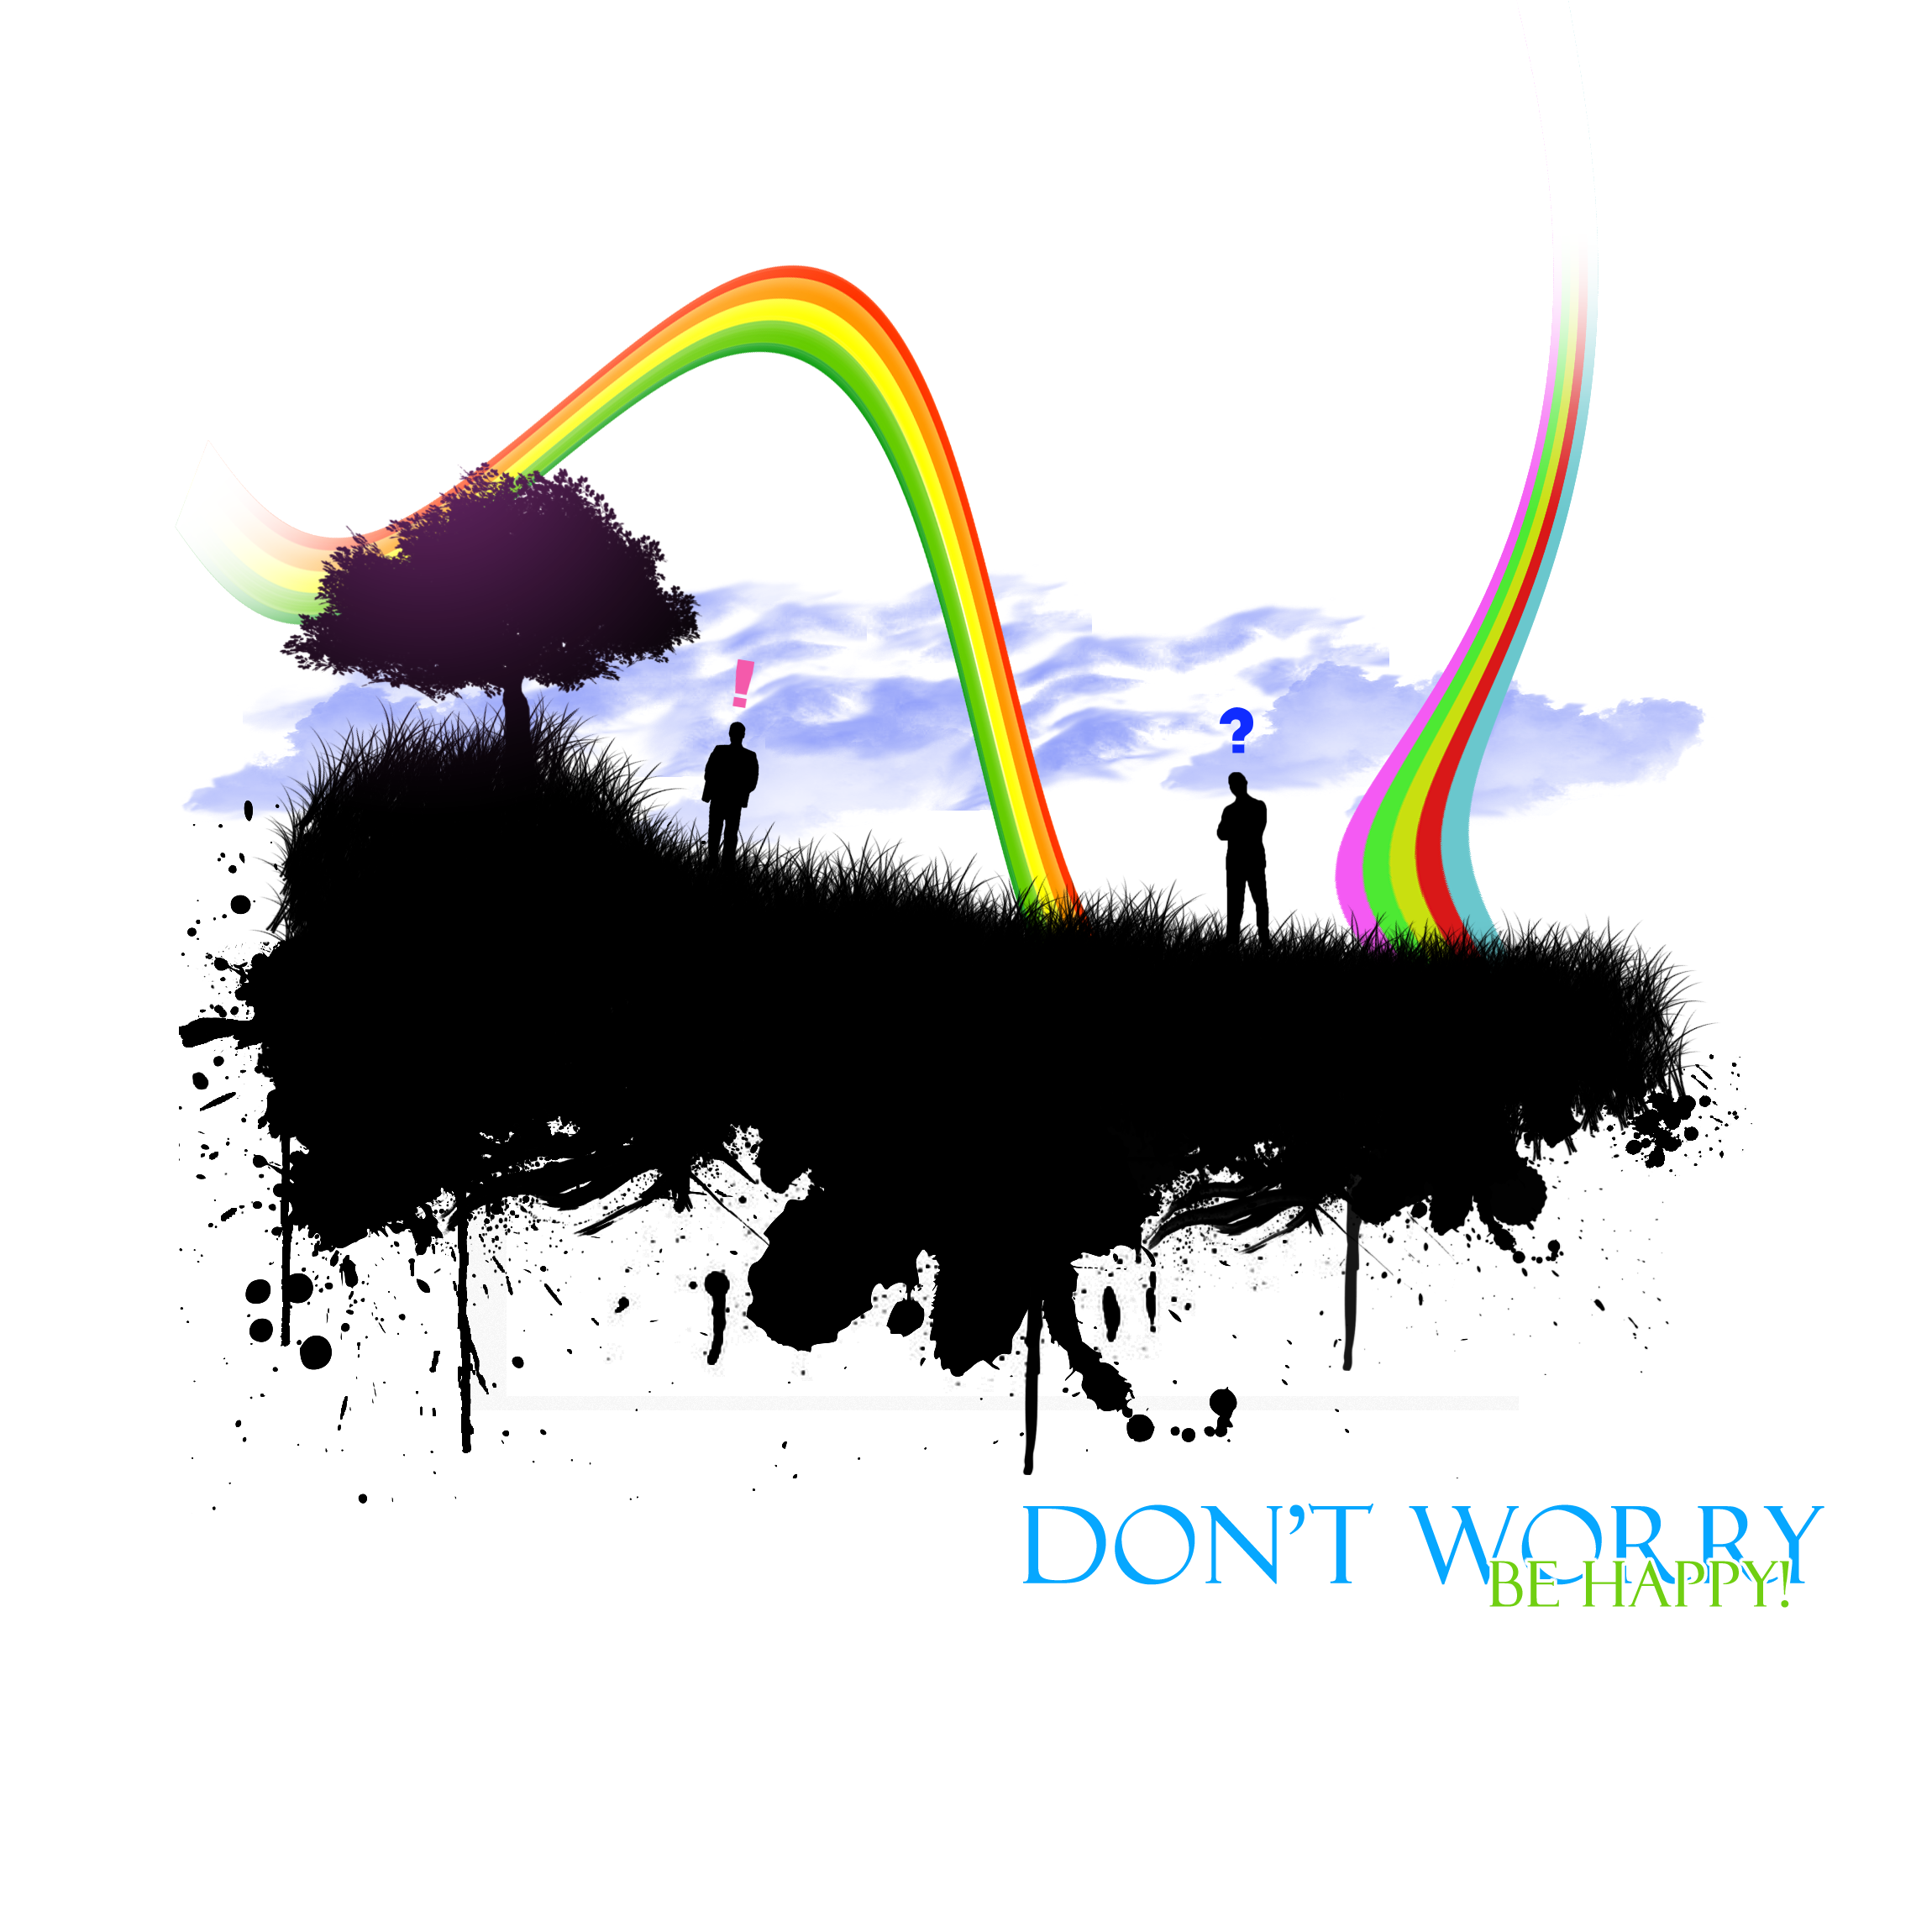 http://fc00.deviantart.net/fs26/f/2008/041/1/3/don__t_worry_be_happy_by_dreejz.png